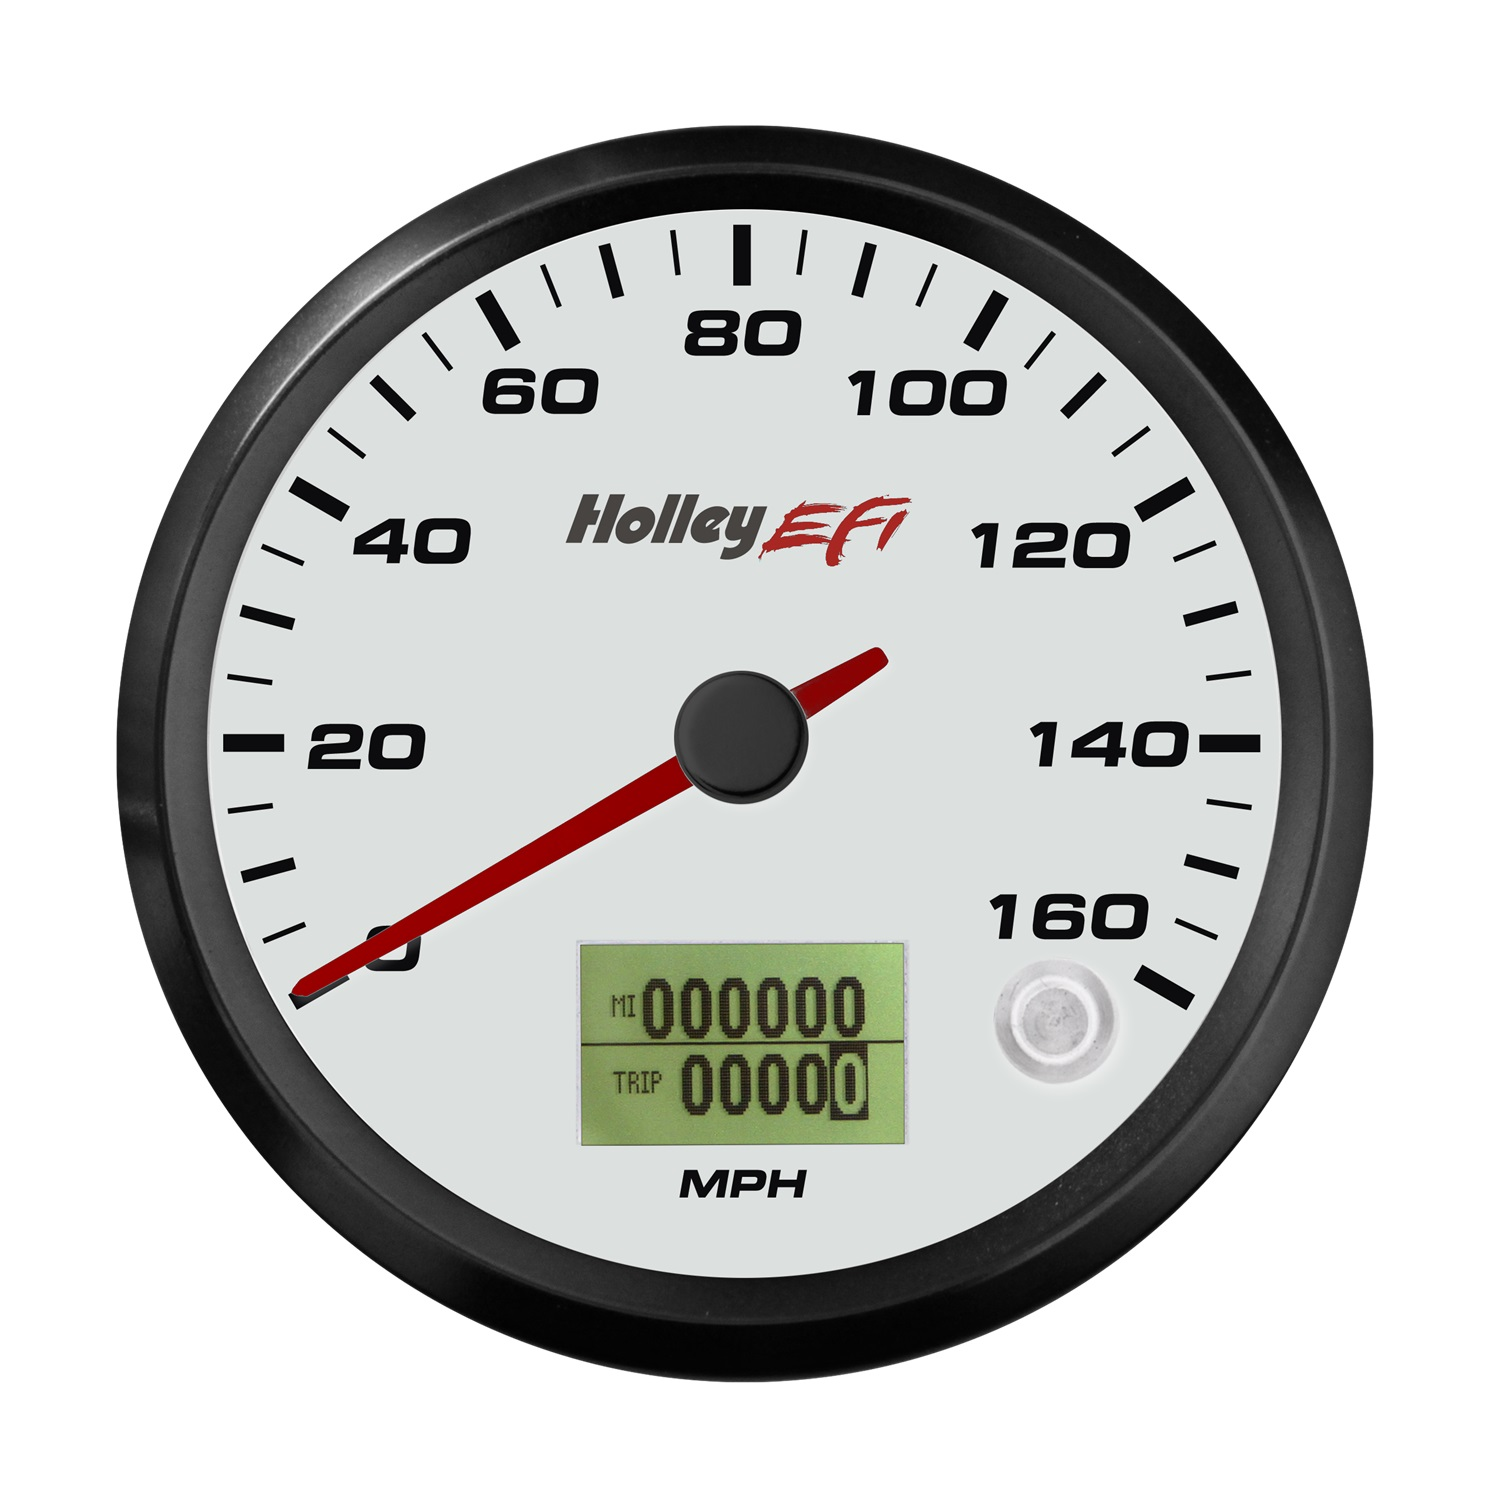 Holley Performance 553-123W Holley EFI GPS Speedometer by Holley